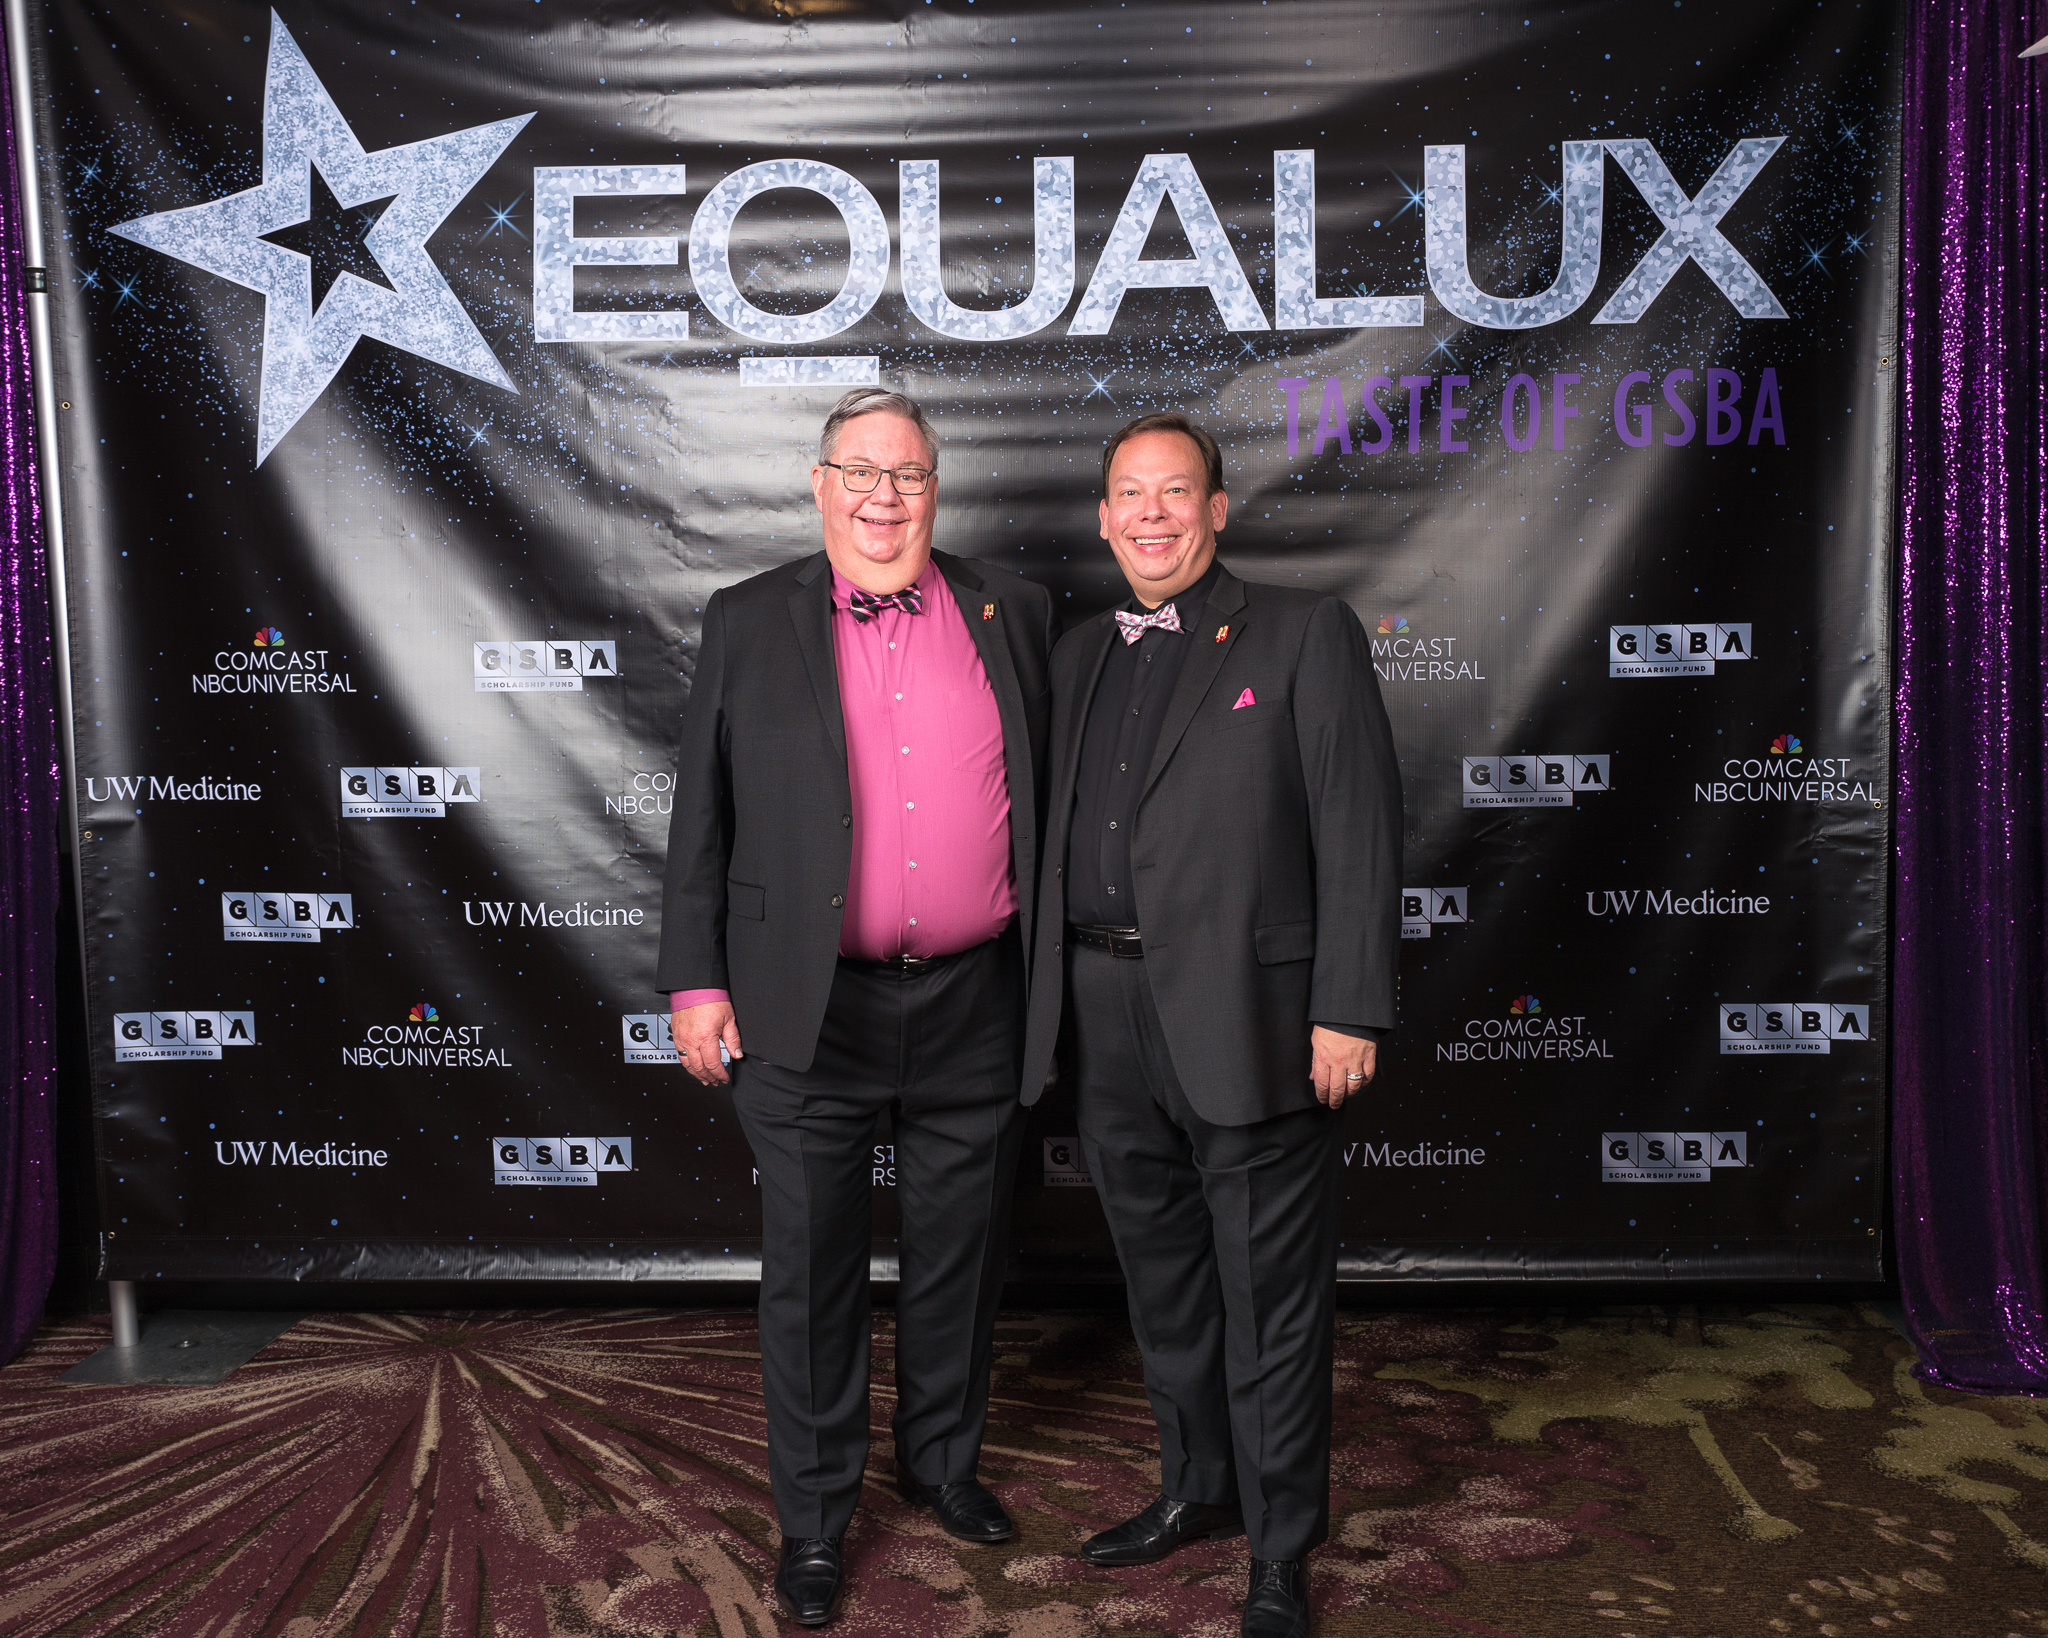 111718_GSBA EQUALUX at The Westin Seattle (Credit- Nate Gowdy)-19.jpg